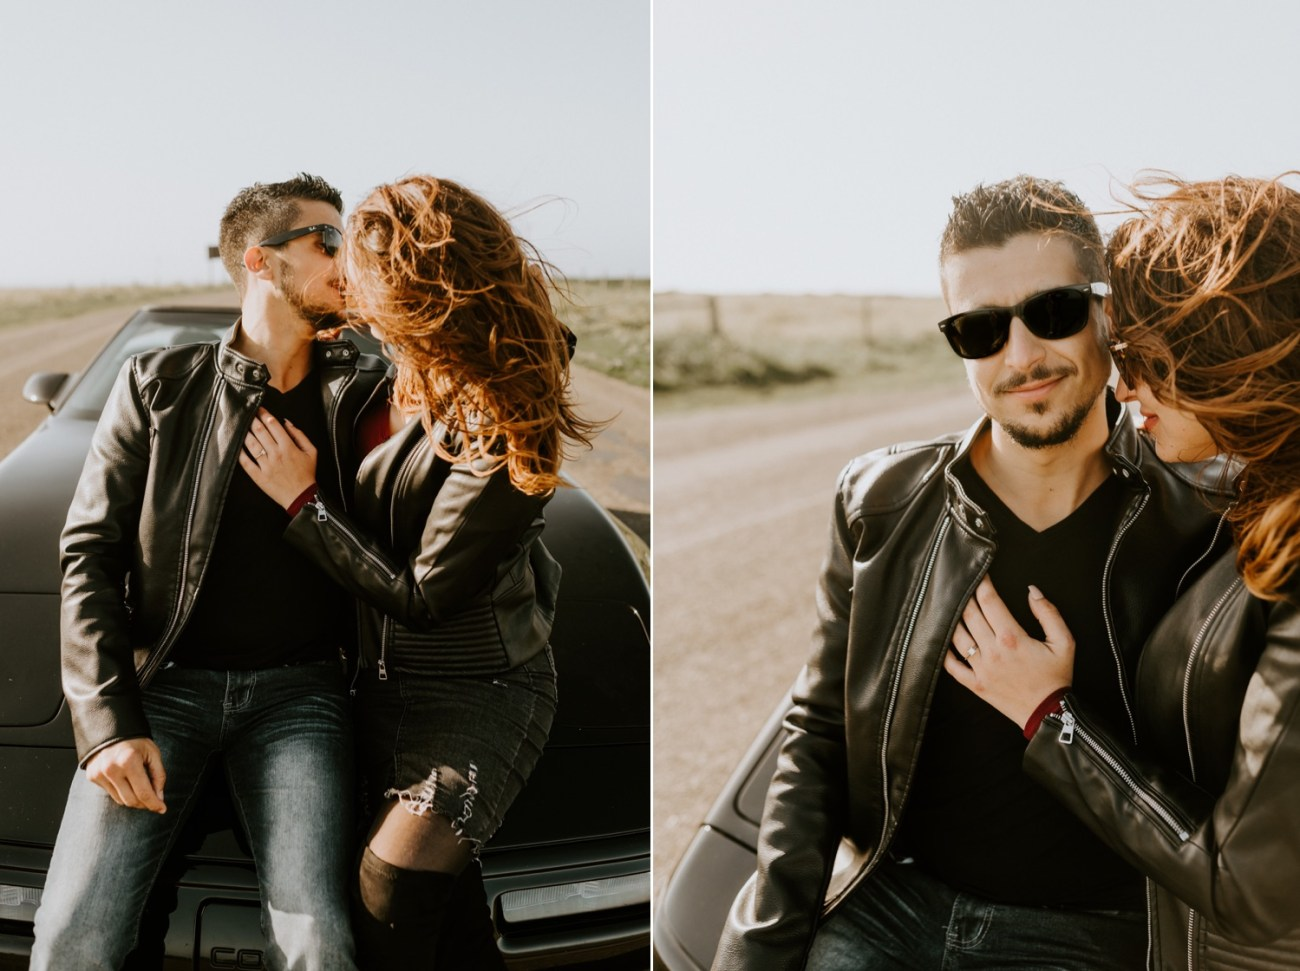 Point Reyes California Engagement Session San Francisco Wedding Photographer Anais Possamai Photography 025